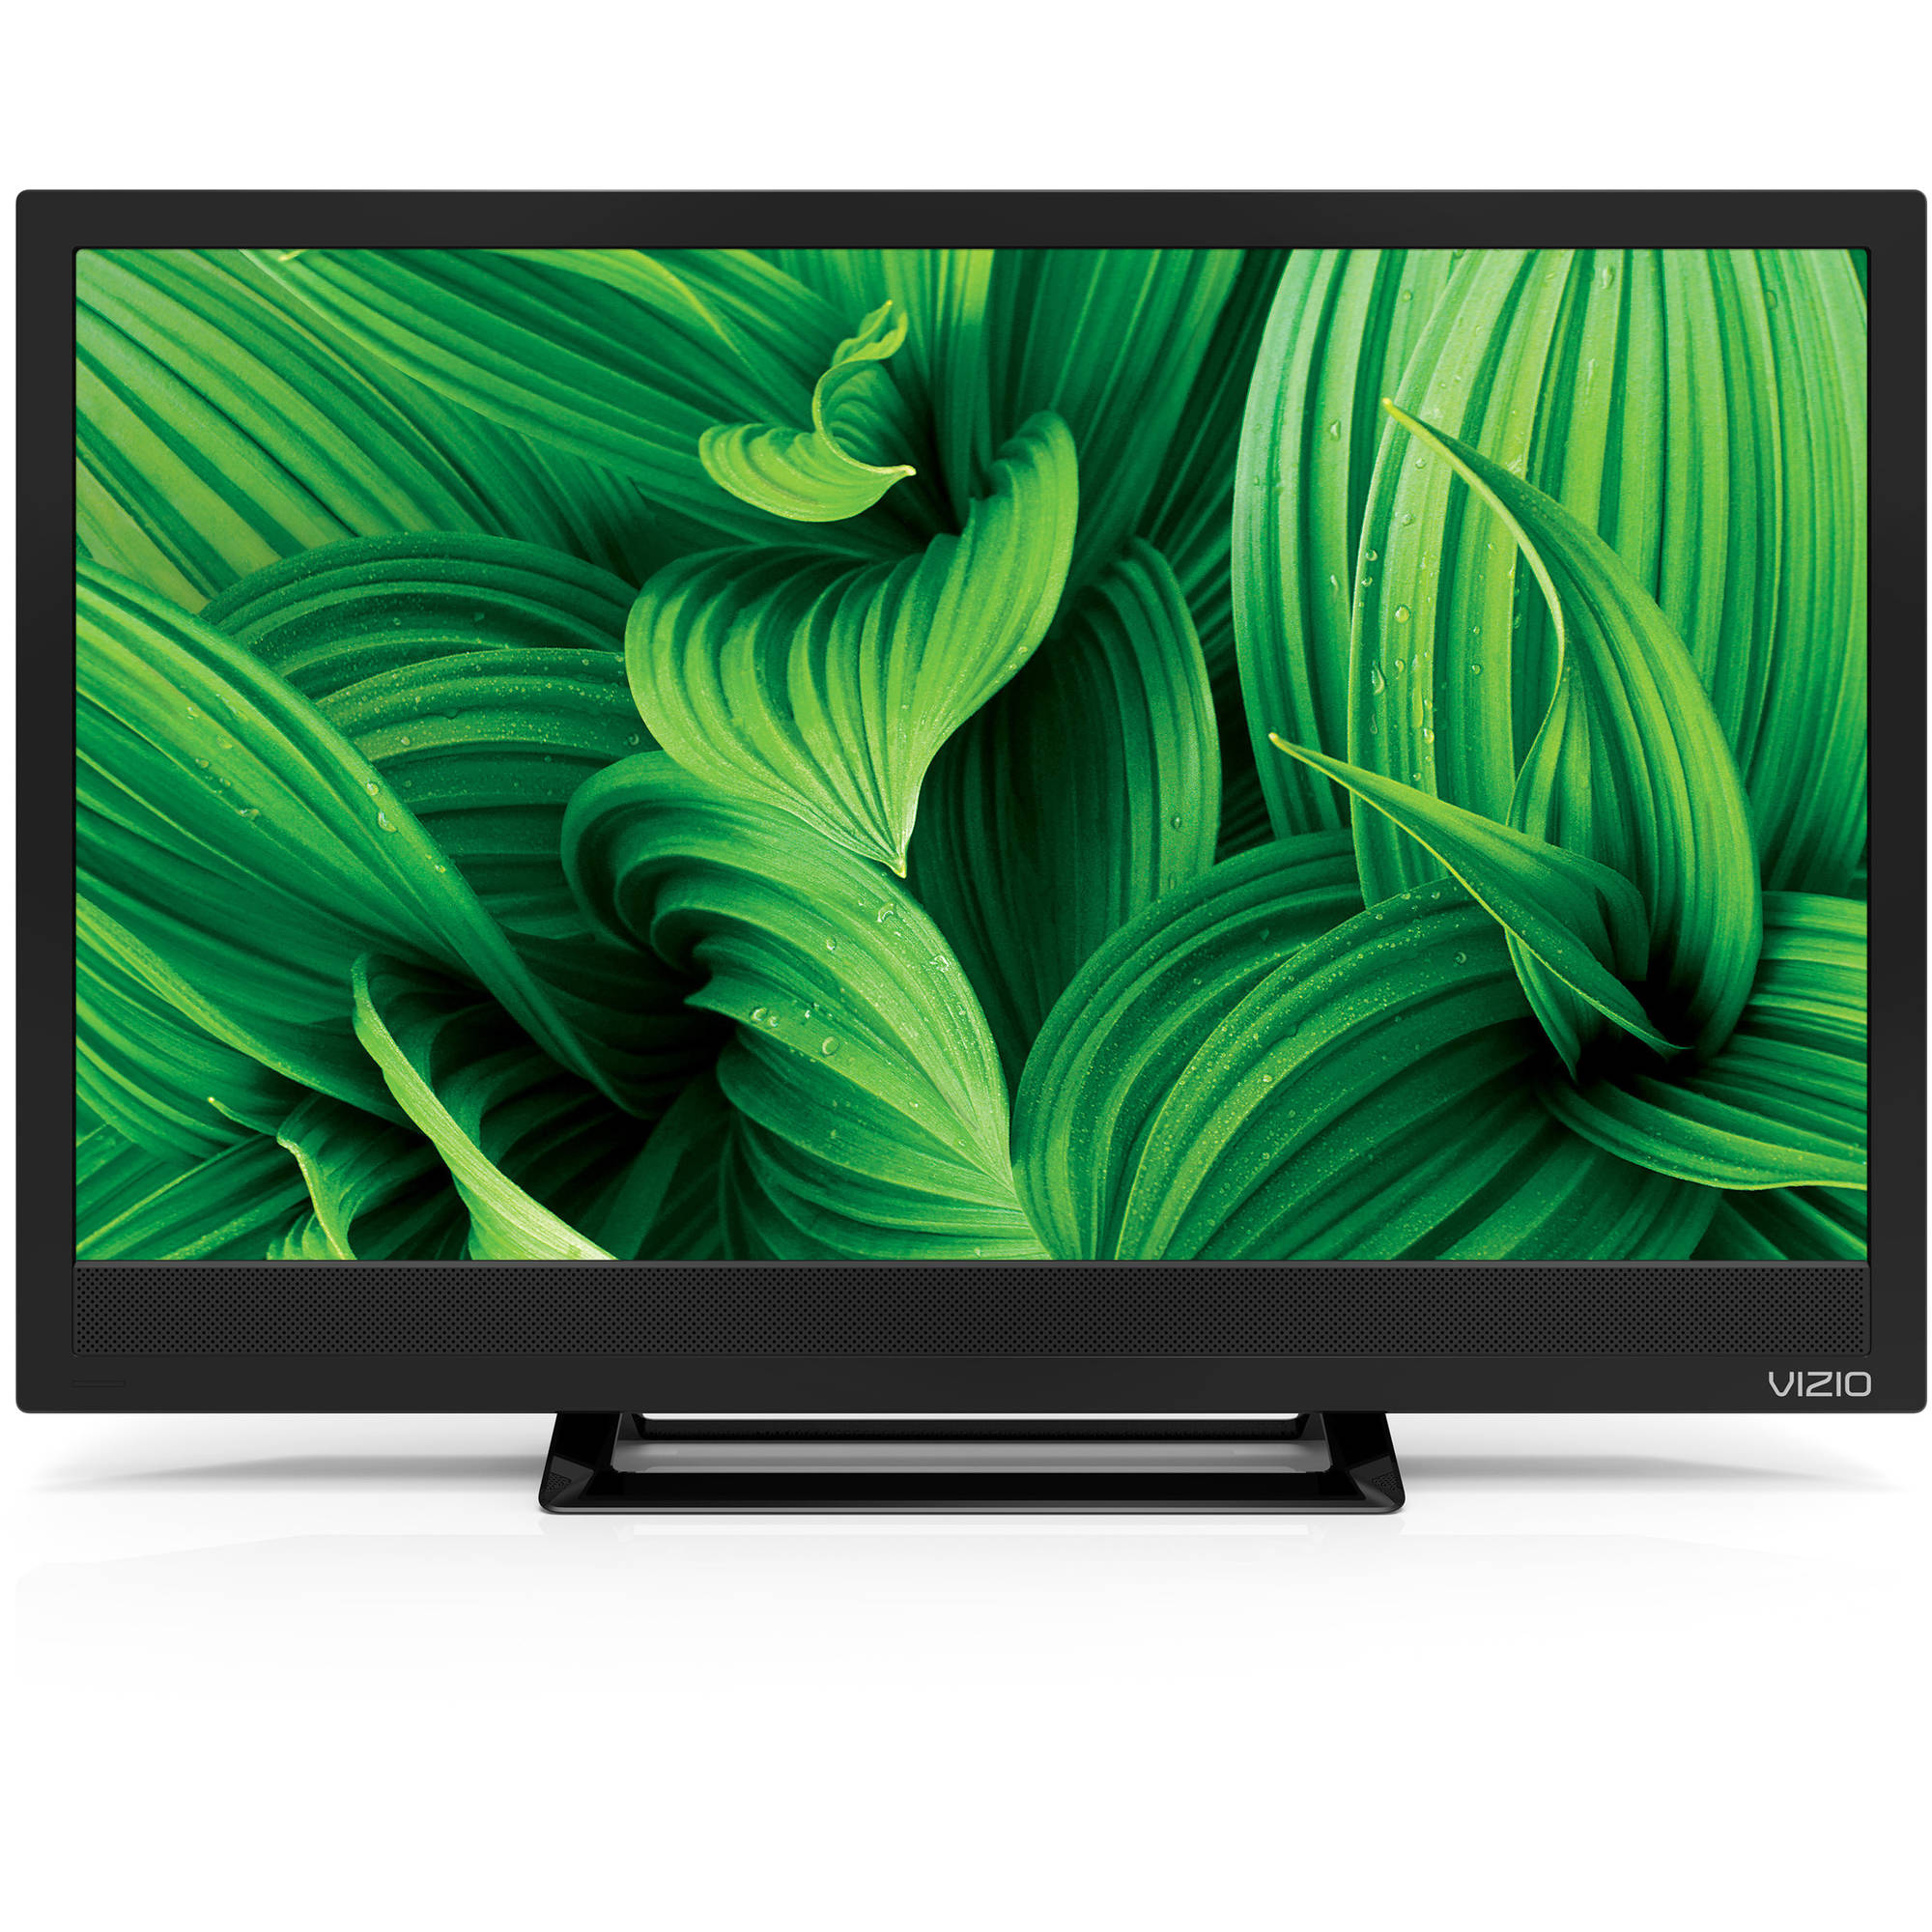 "VIZIO 24"" Class HD (720P) Edgelit LED TV (D24hn-E1)"